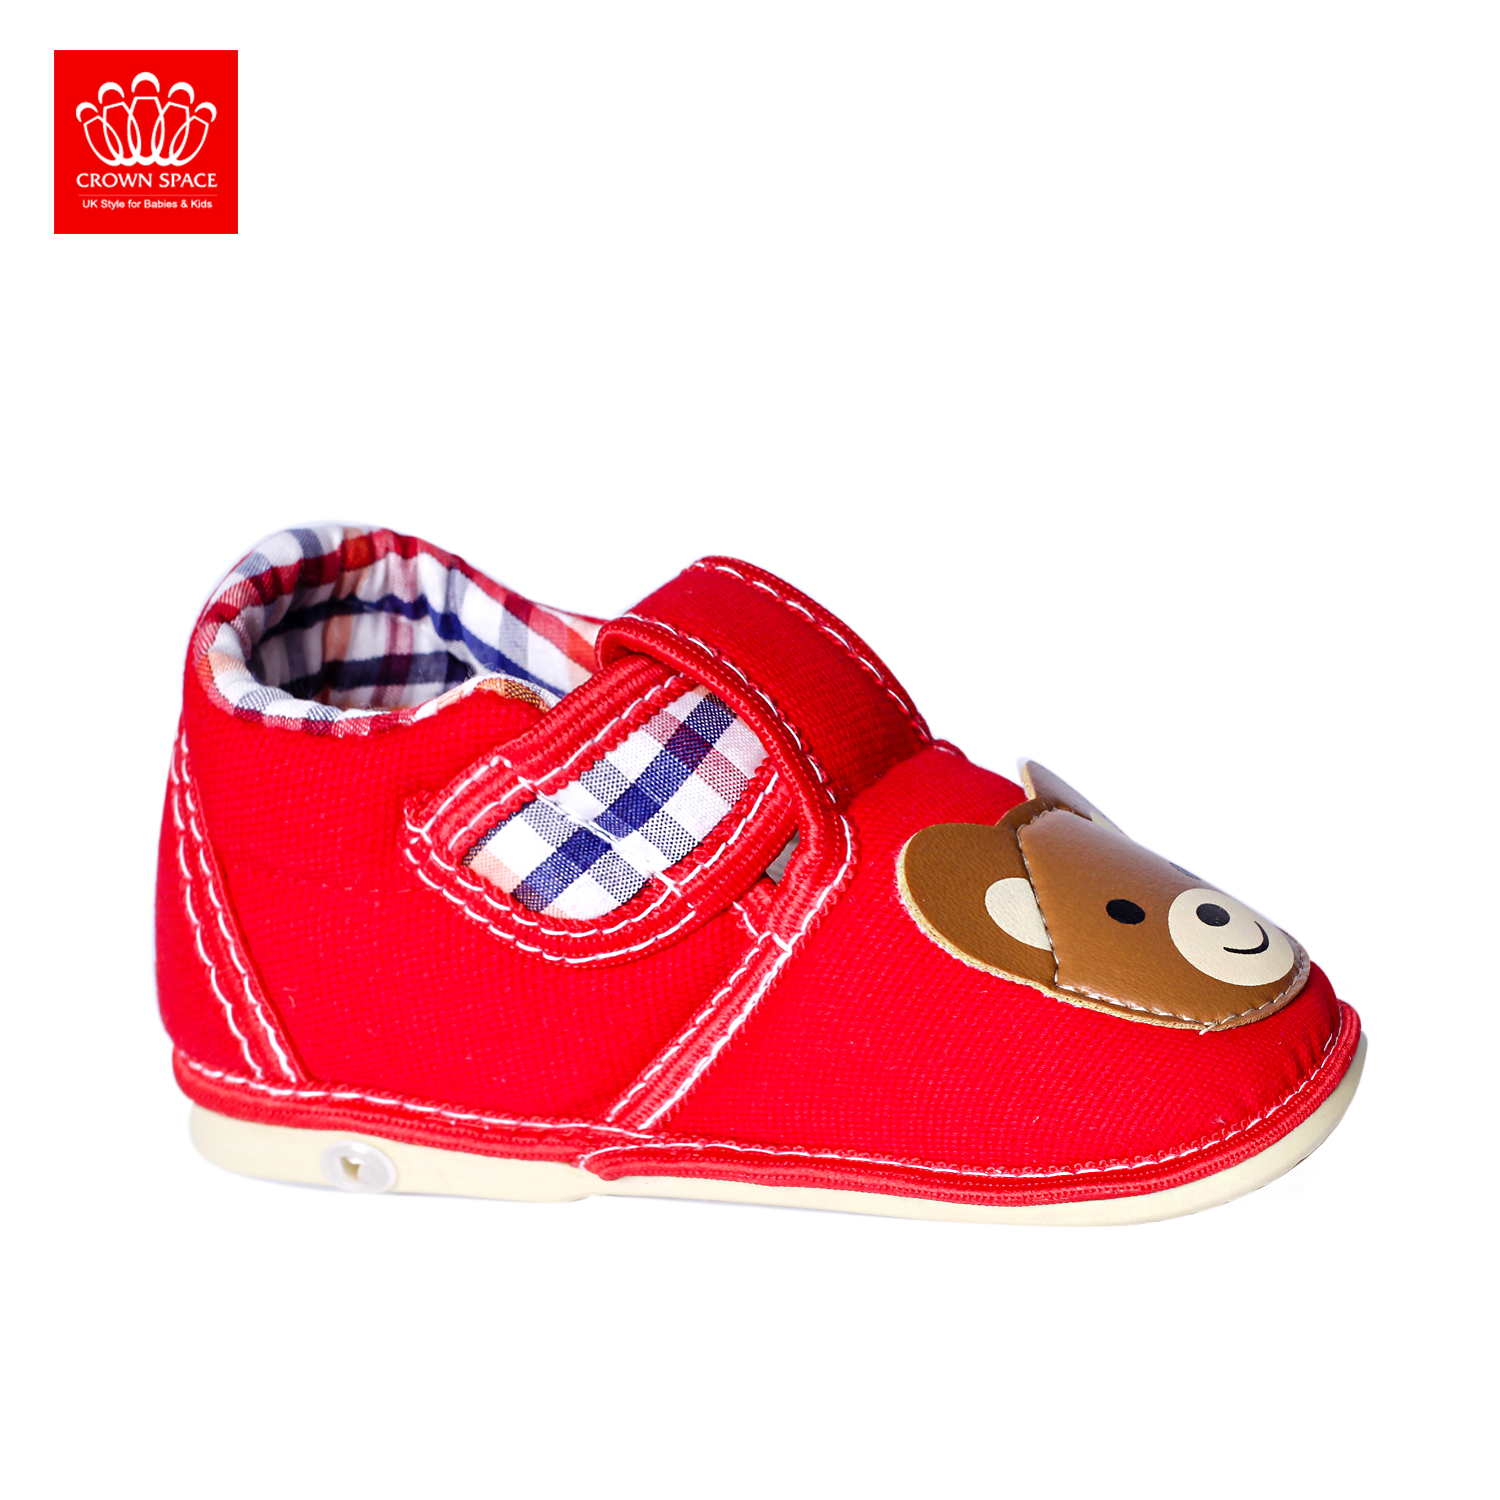 RB Baby Walking Shoes 022_213